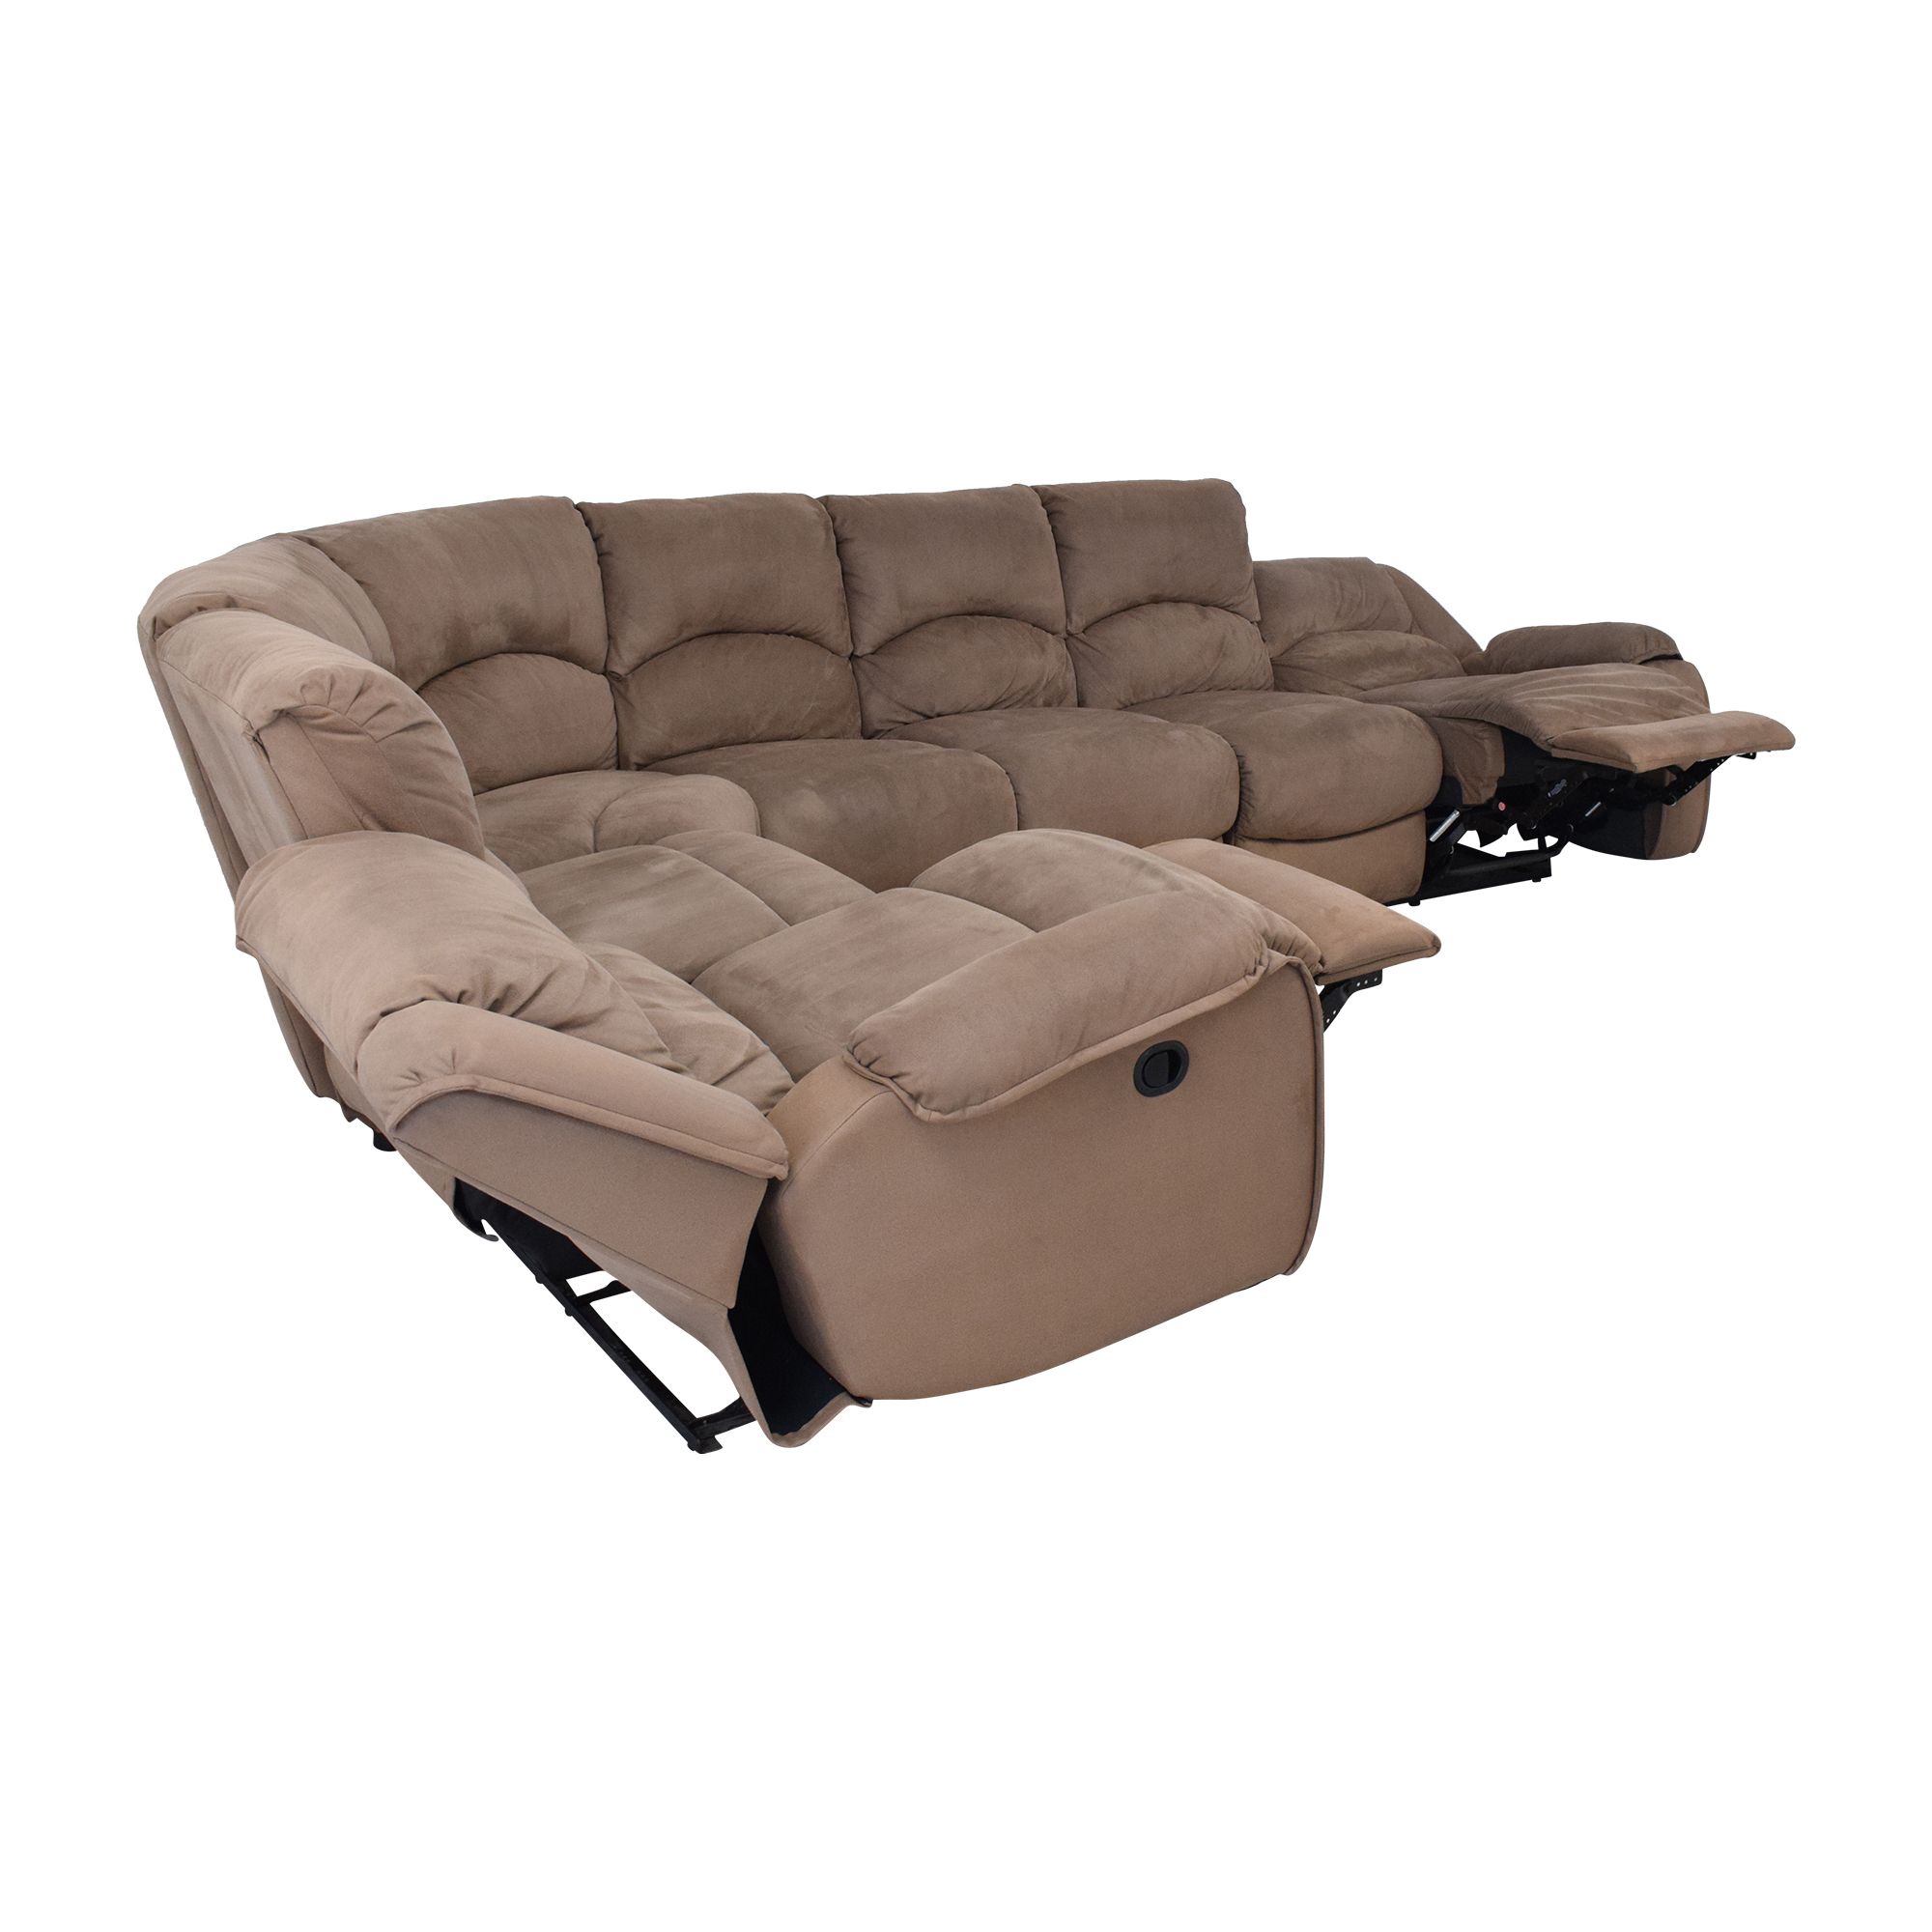 Raymour & Flanigan Raymour & Flanigan Sectional Sofa with Recliners coupon